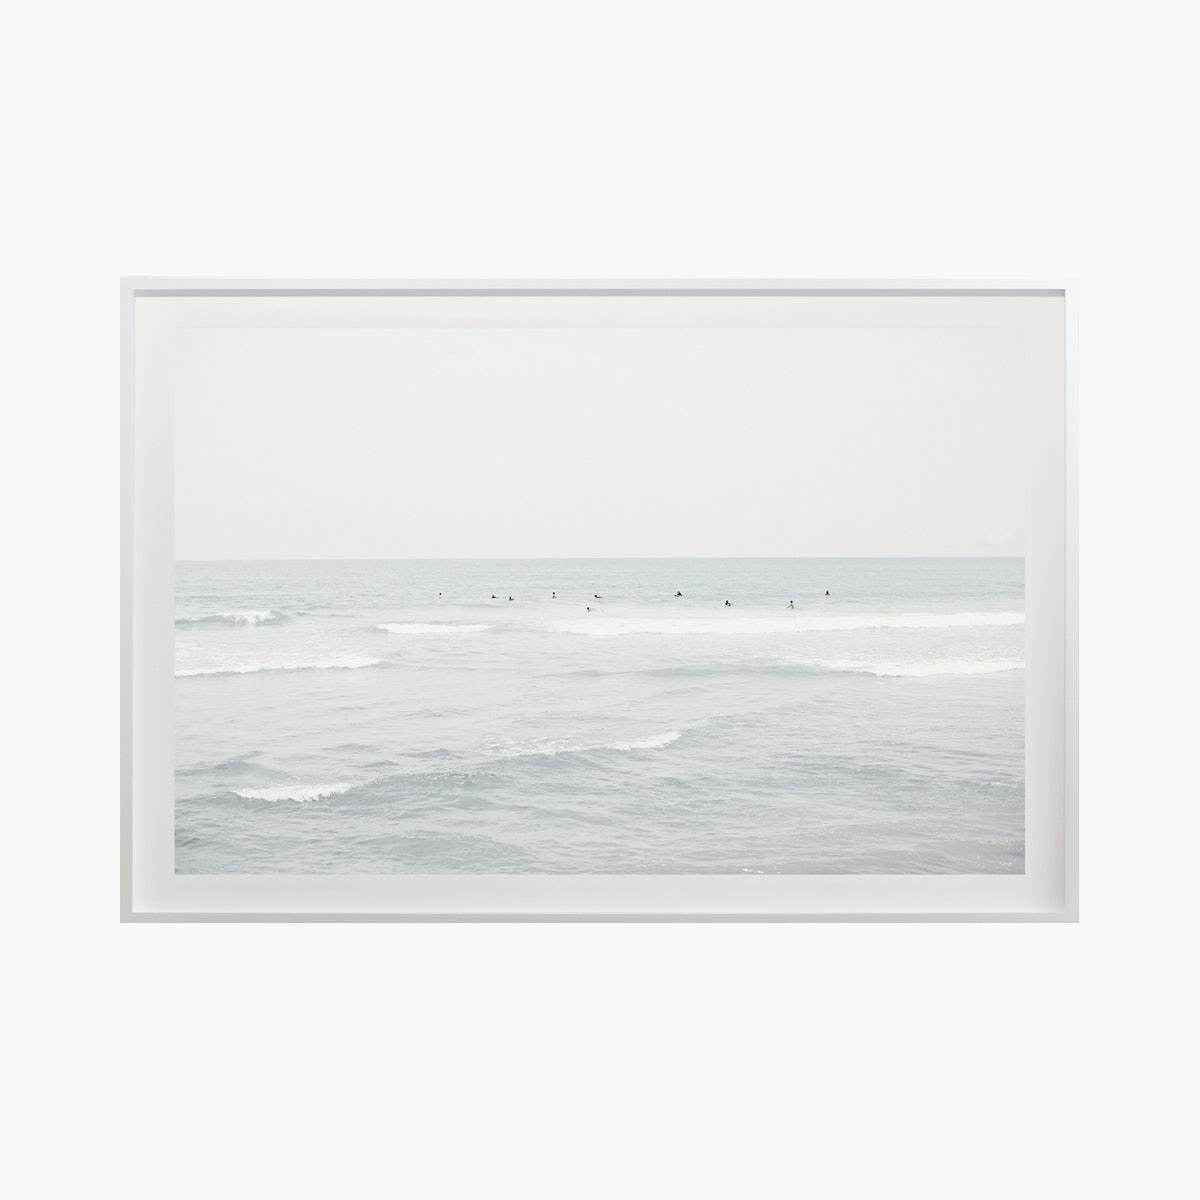 """Surf No. 8147"" by Cas Friese"